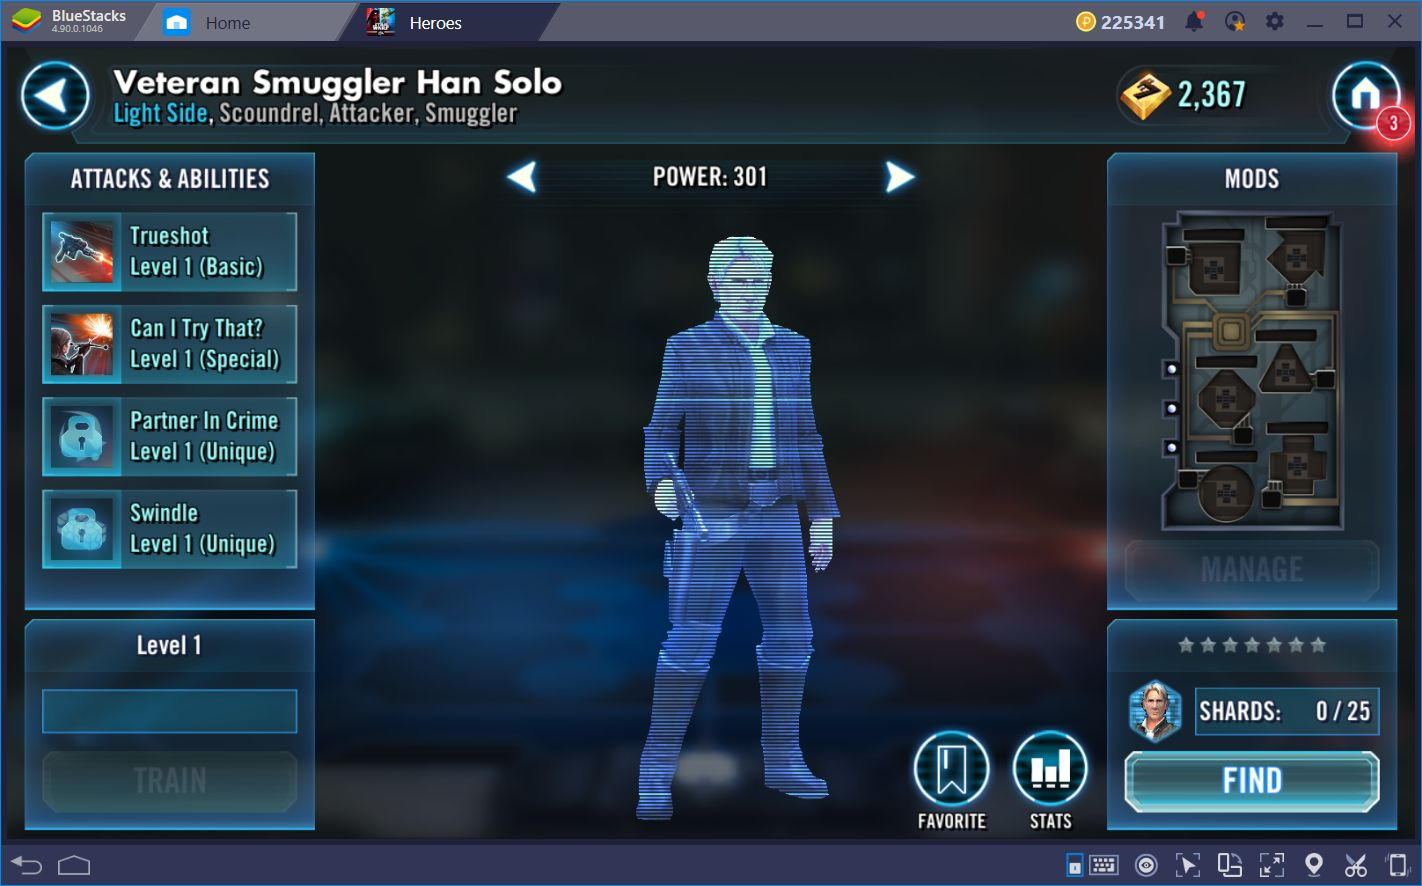 Starter Guide for Star Wars: Galaxy of Heroes